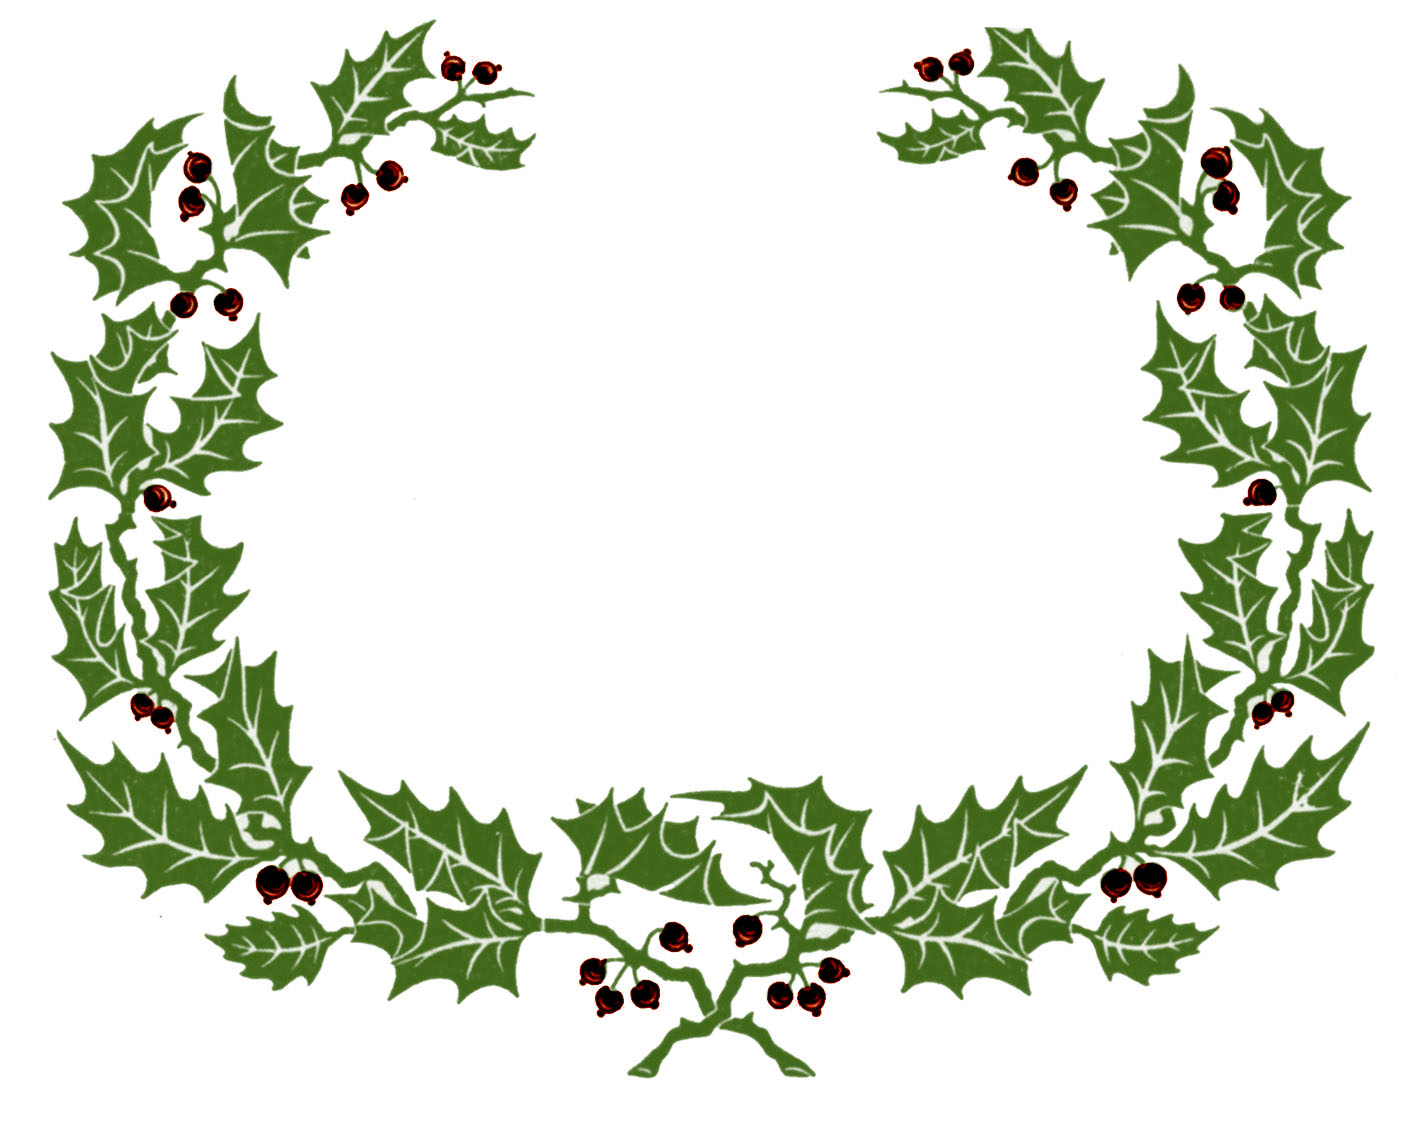 Vintage clip art holly wreath graphic frame the graphics fairy